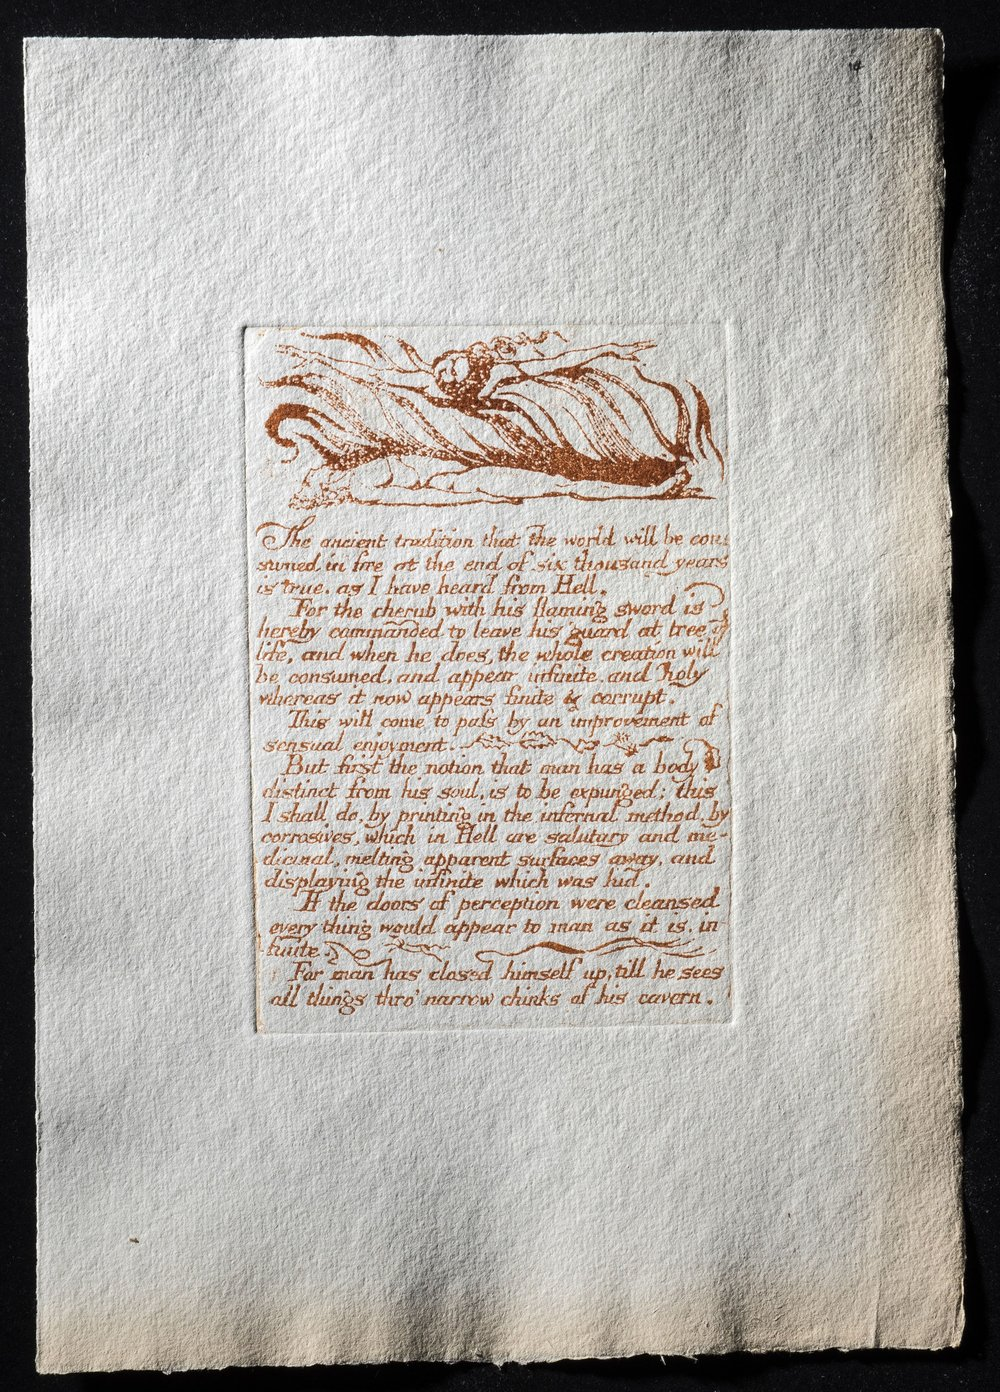 William-Blake-Prints-Marriage+of+Heaven+and+Hell-14.jpg